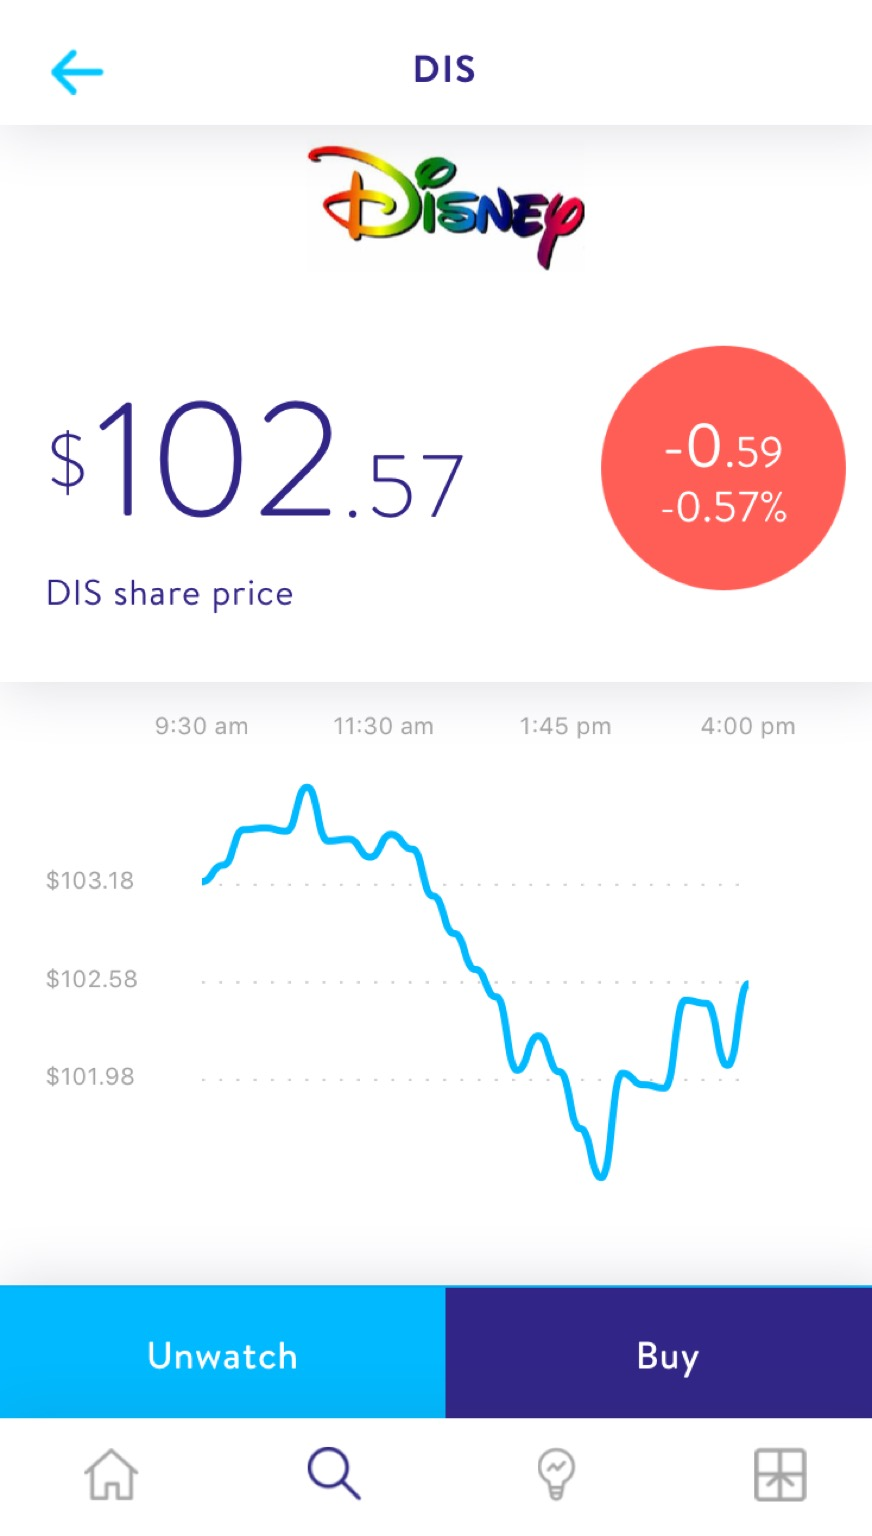 Screenshot of Disney's stock performance as shown in the Stockpile app on March 1, 2018